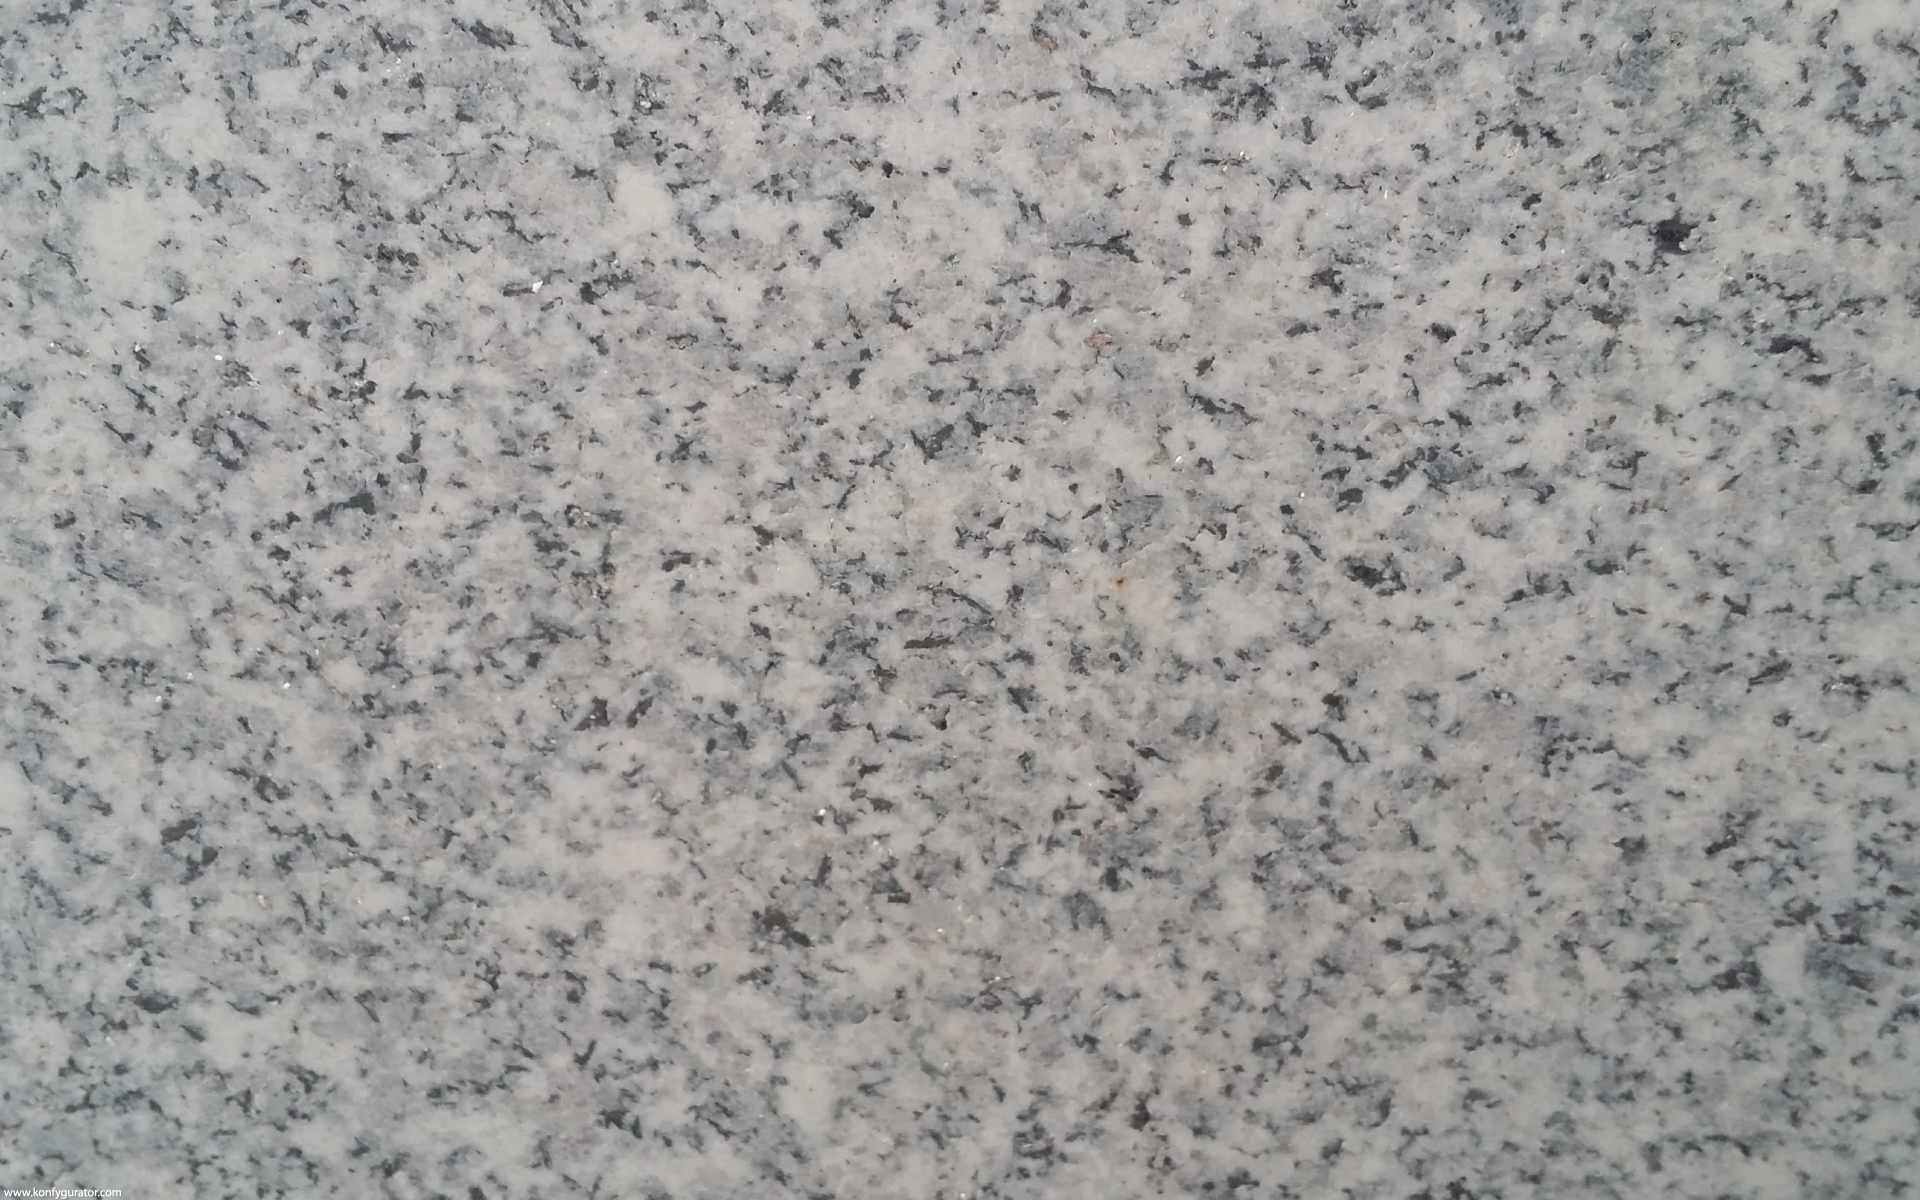 HD Wallpapers - Textures - granite, light, gray